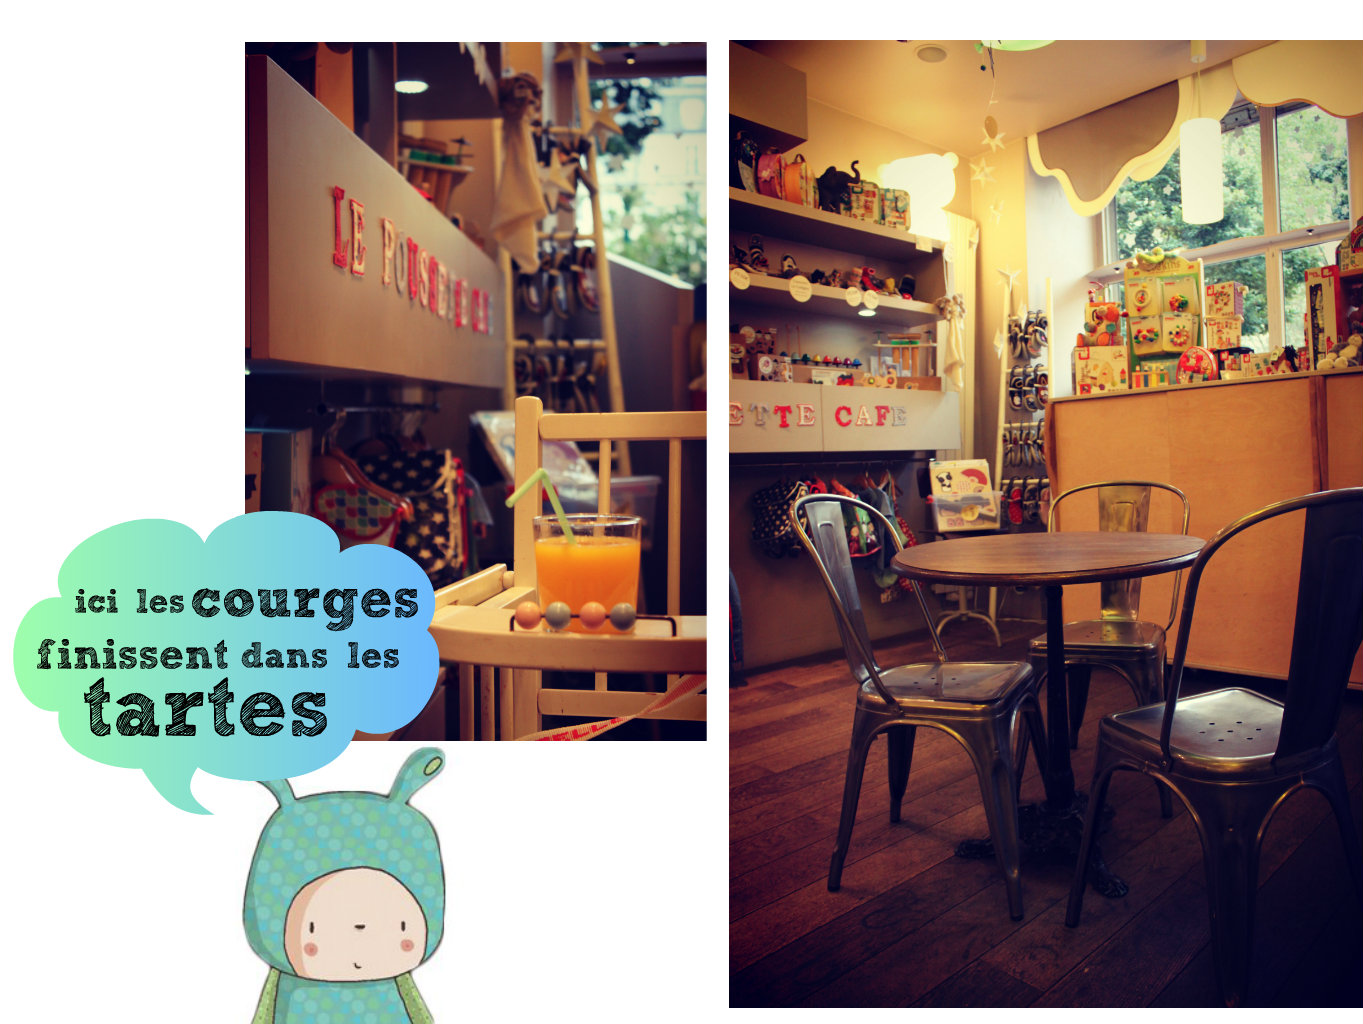 bbnove e-shop puériculture design - concept store made in france pour bébés Poussette Café Paris